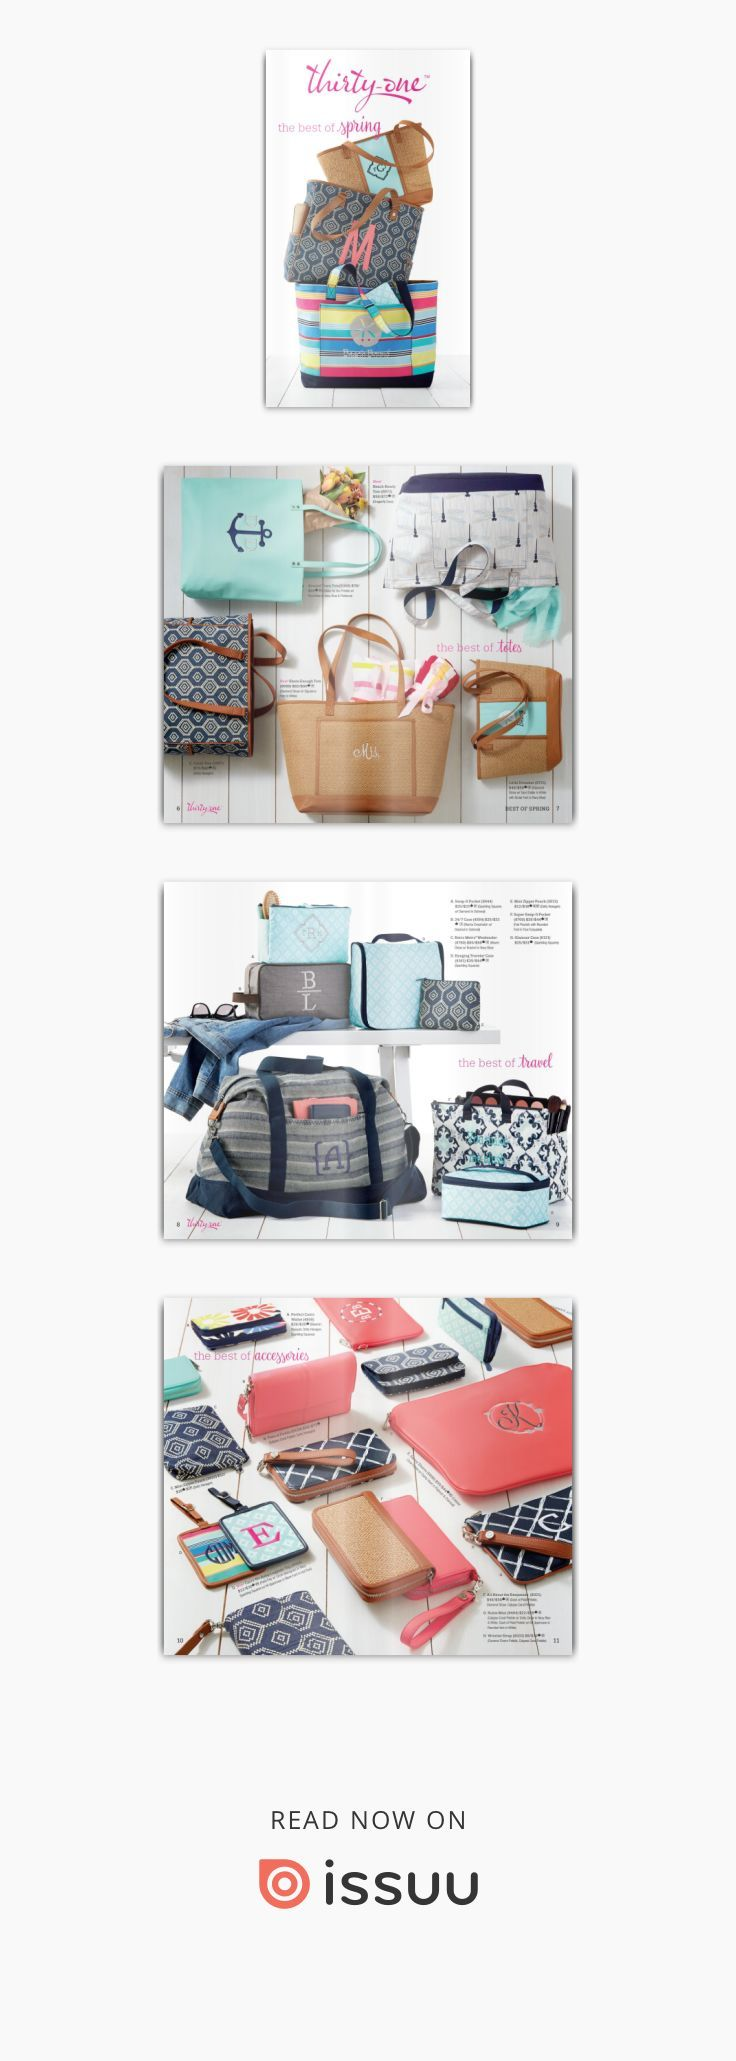 To order visit www.mythirtyone.ca/2612702